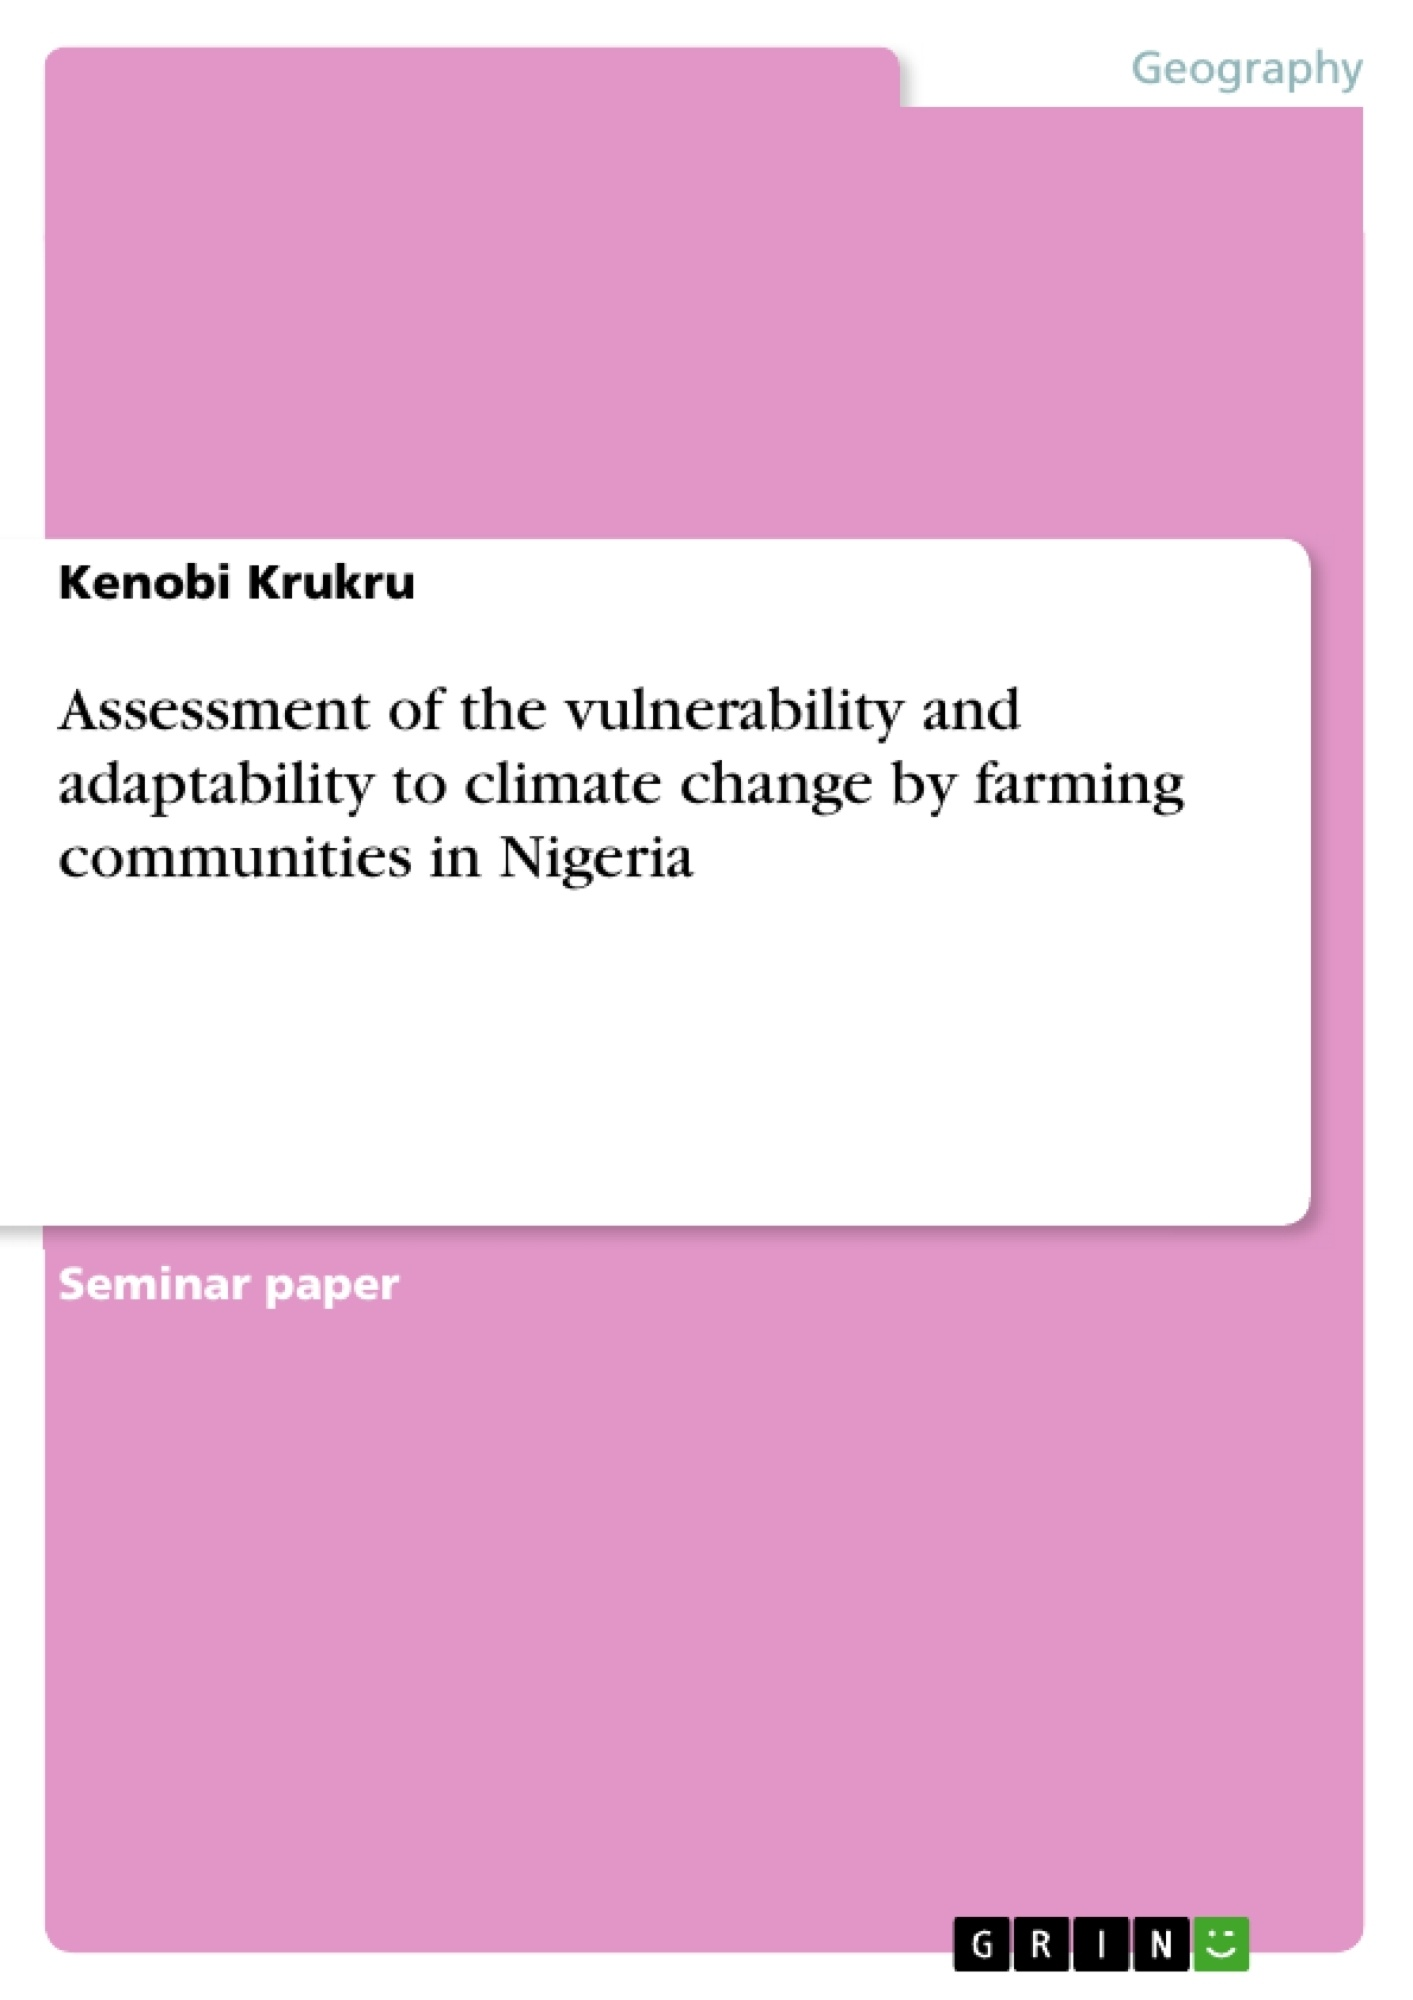 Title: Assessment of the vulnerability and adaptability to climate change by farming communities in Nigeria